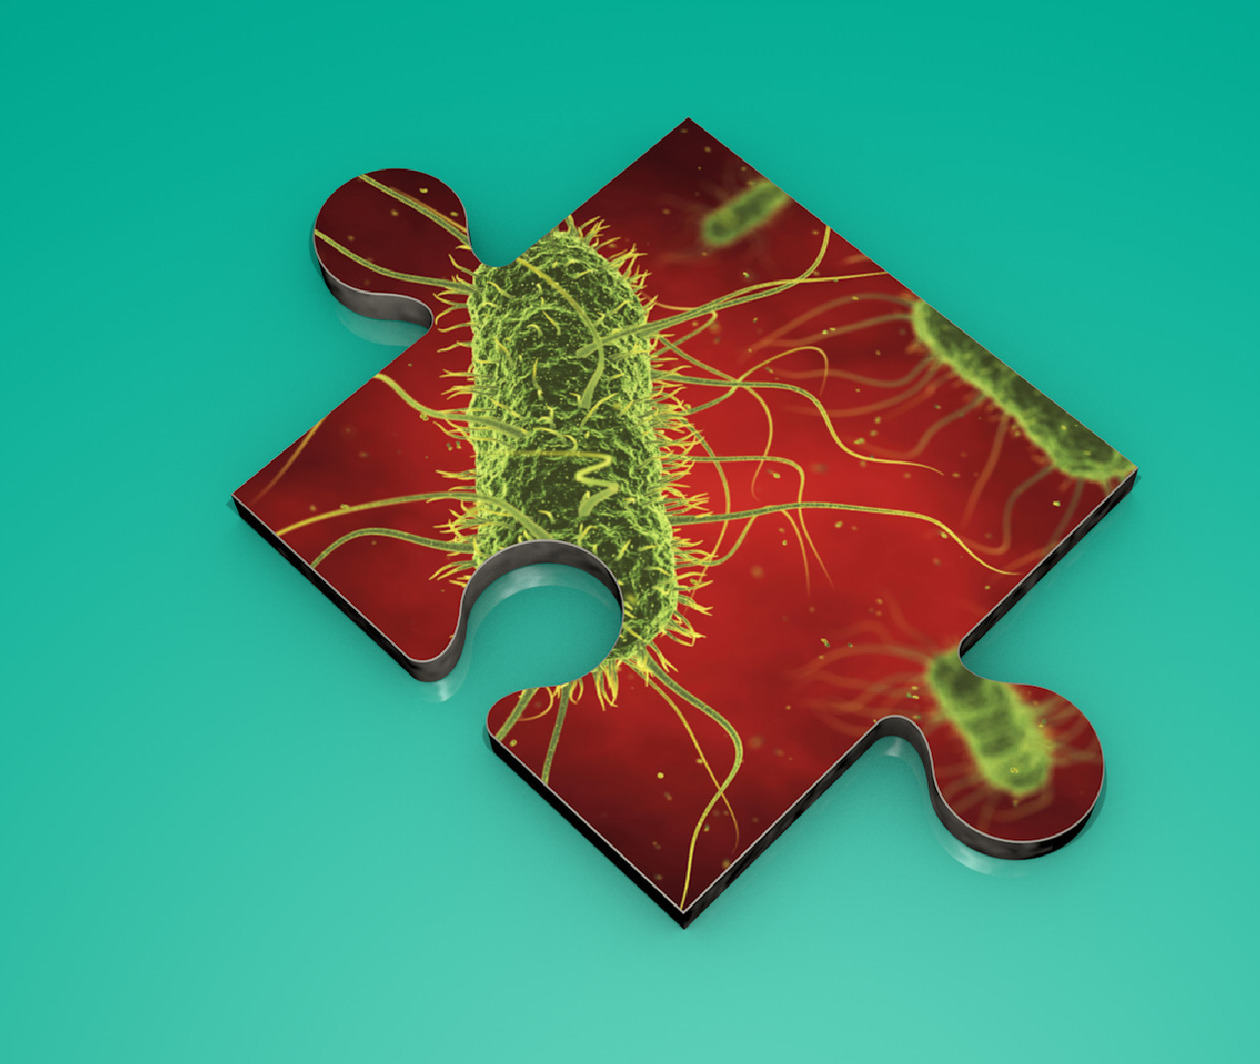 Causes of Human Disease: Transmitting and Fighting Infection